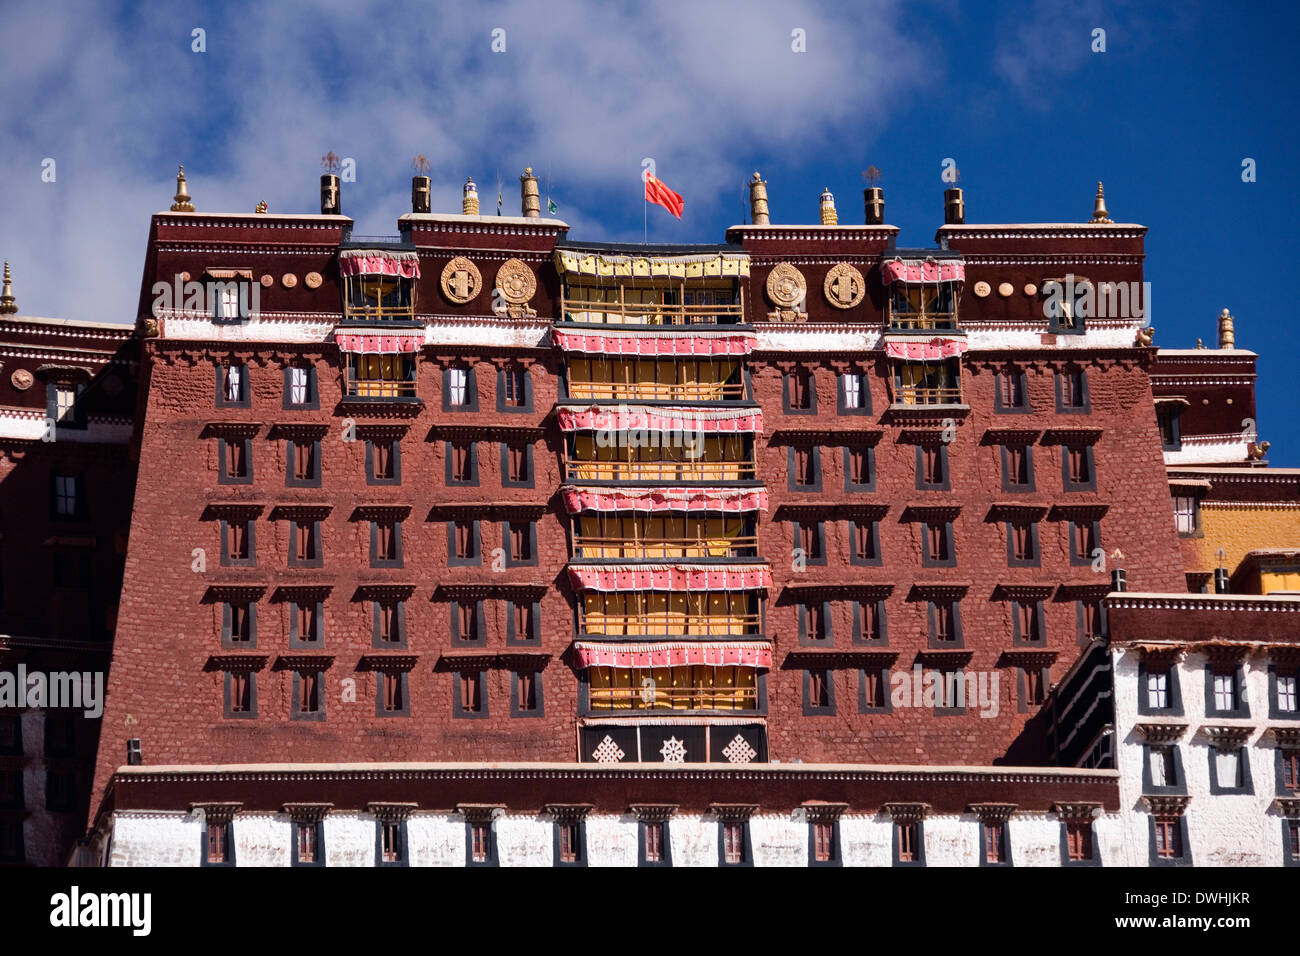 Potala Palace in the city of Lhasa in Tibet (Tibet Autonomous Region of China) - Stock Image